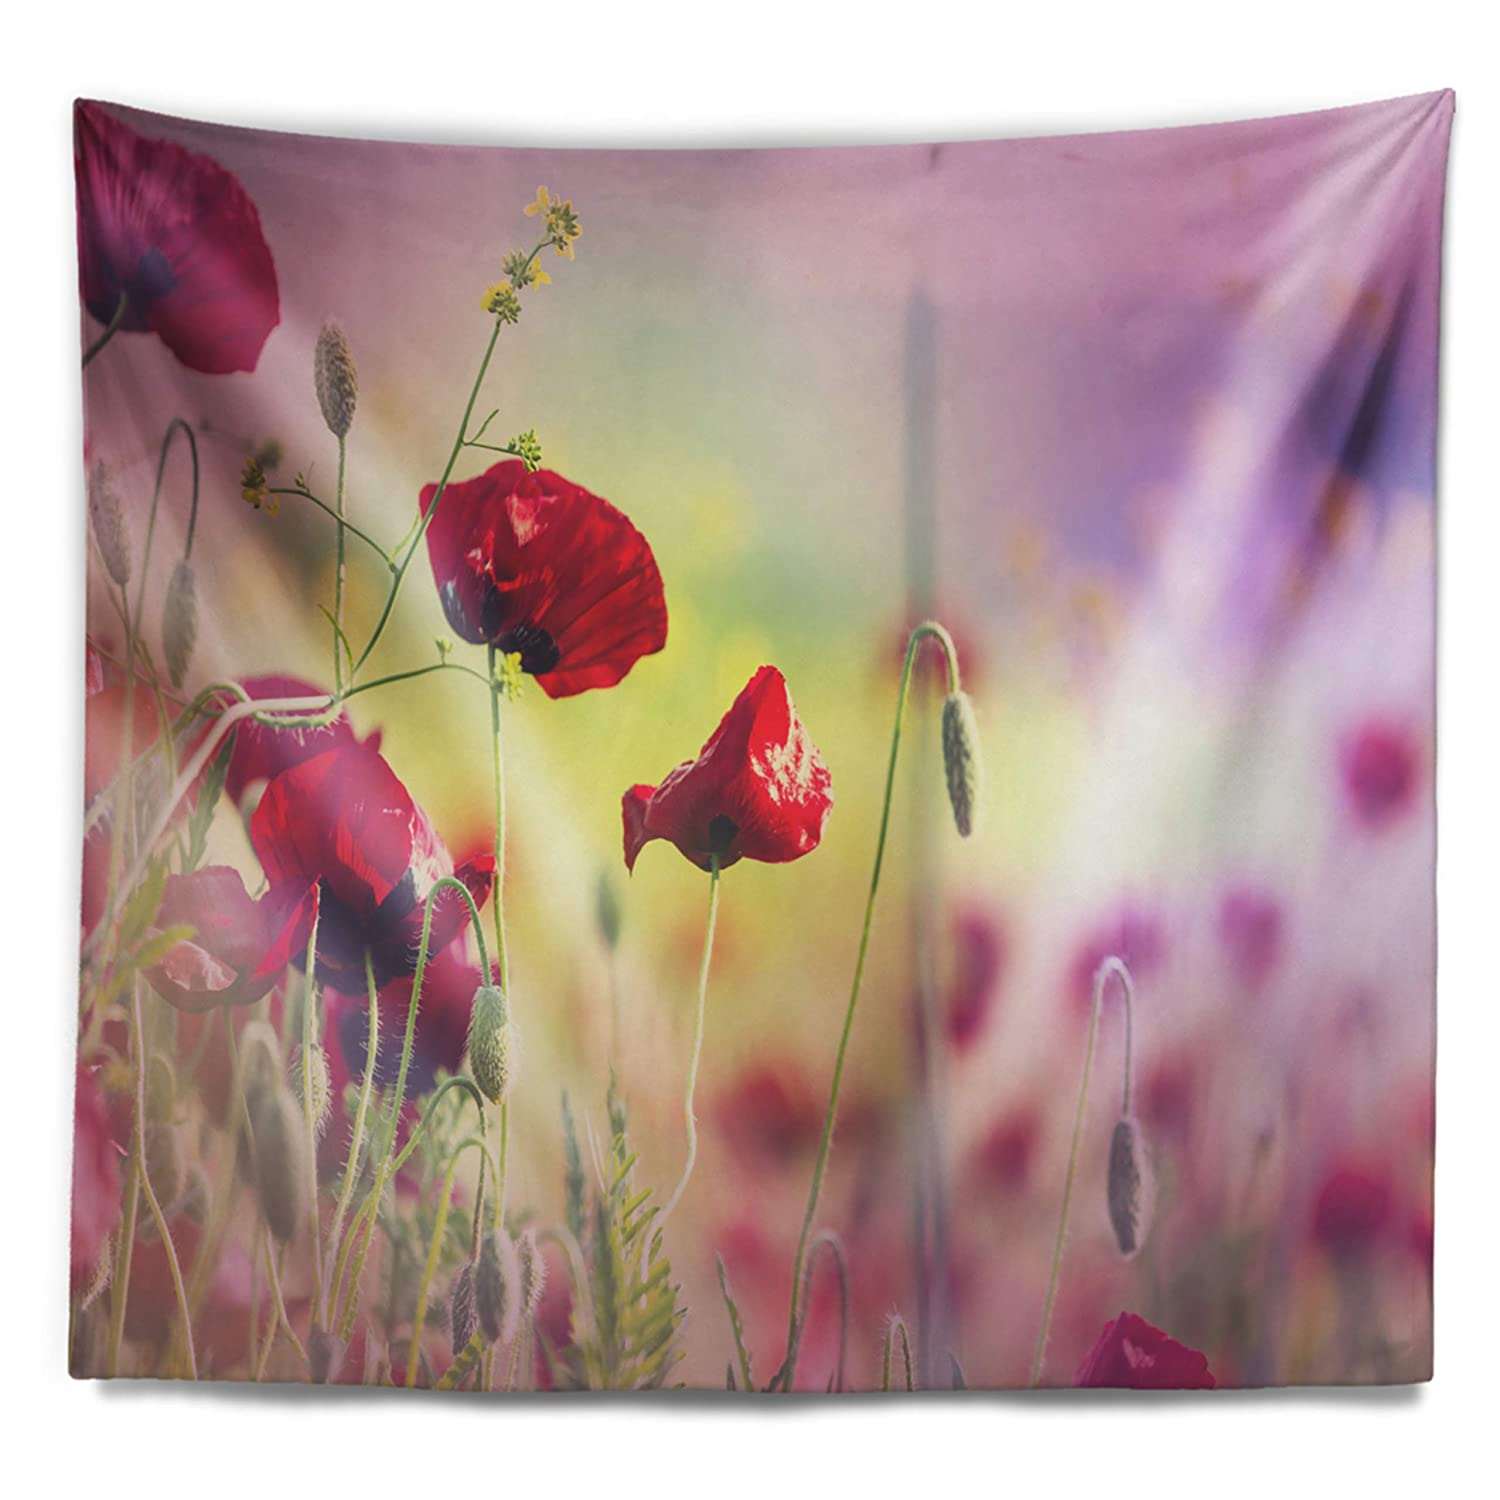 Designart TAP12709-60-50  Beautiful Poppy Flower Garden Floral Blanket D/écor Art for Home and Office Wall Tapestry Large 60 in in x 50 in